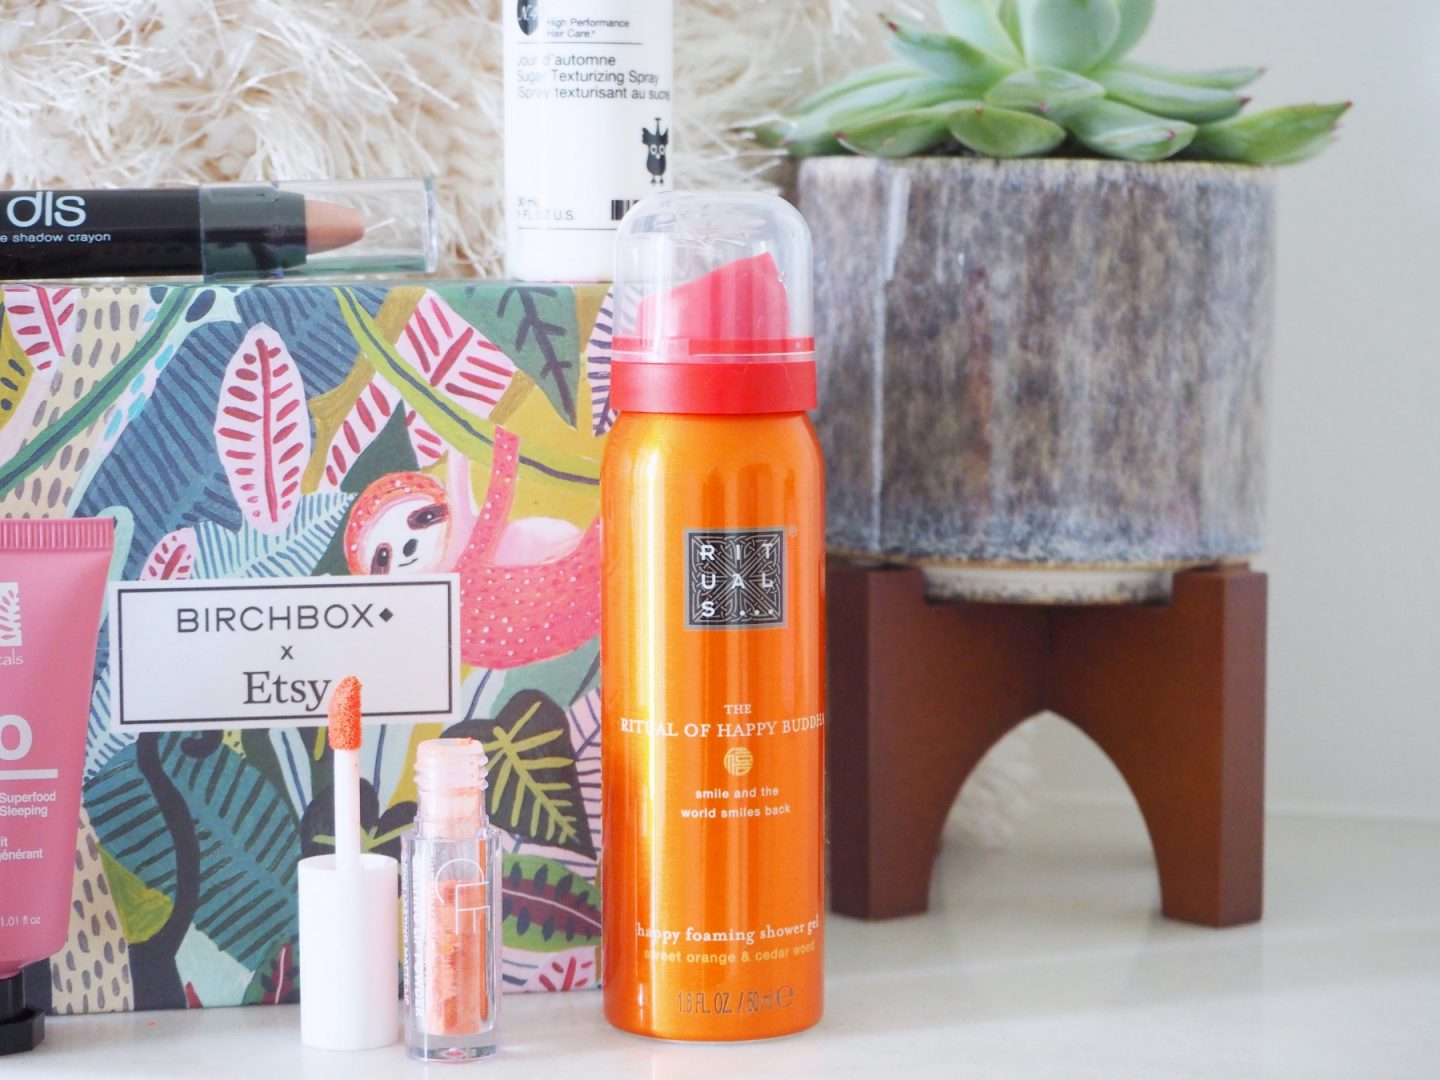 Back to the Birchbox - close up off rituals shower gel & melting lip powder